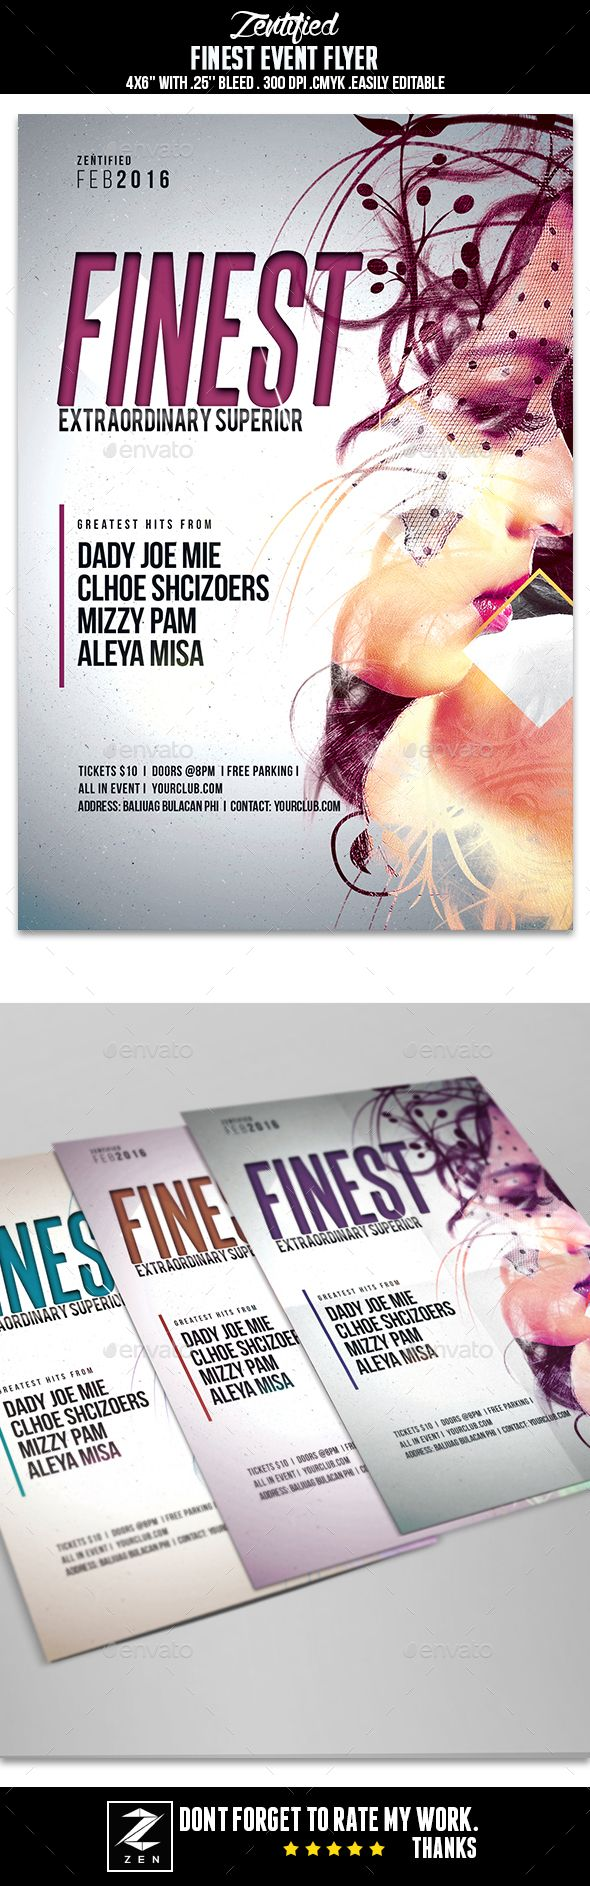 Finest Event Flyer Template PSD. Download here: graphicriver.net/...